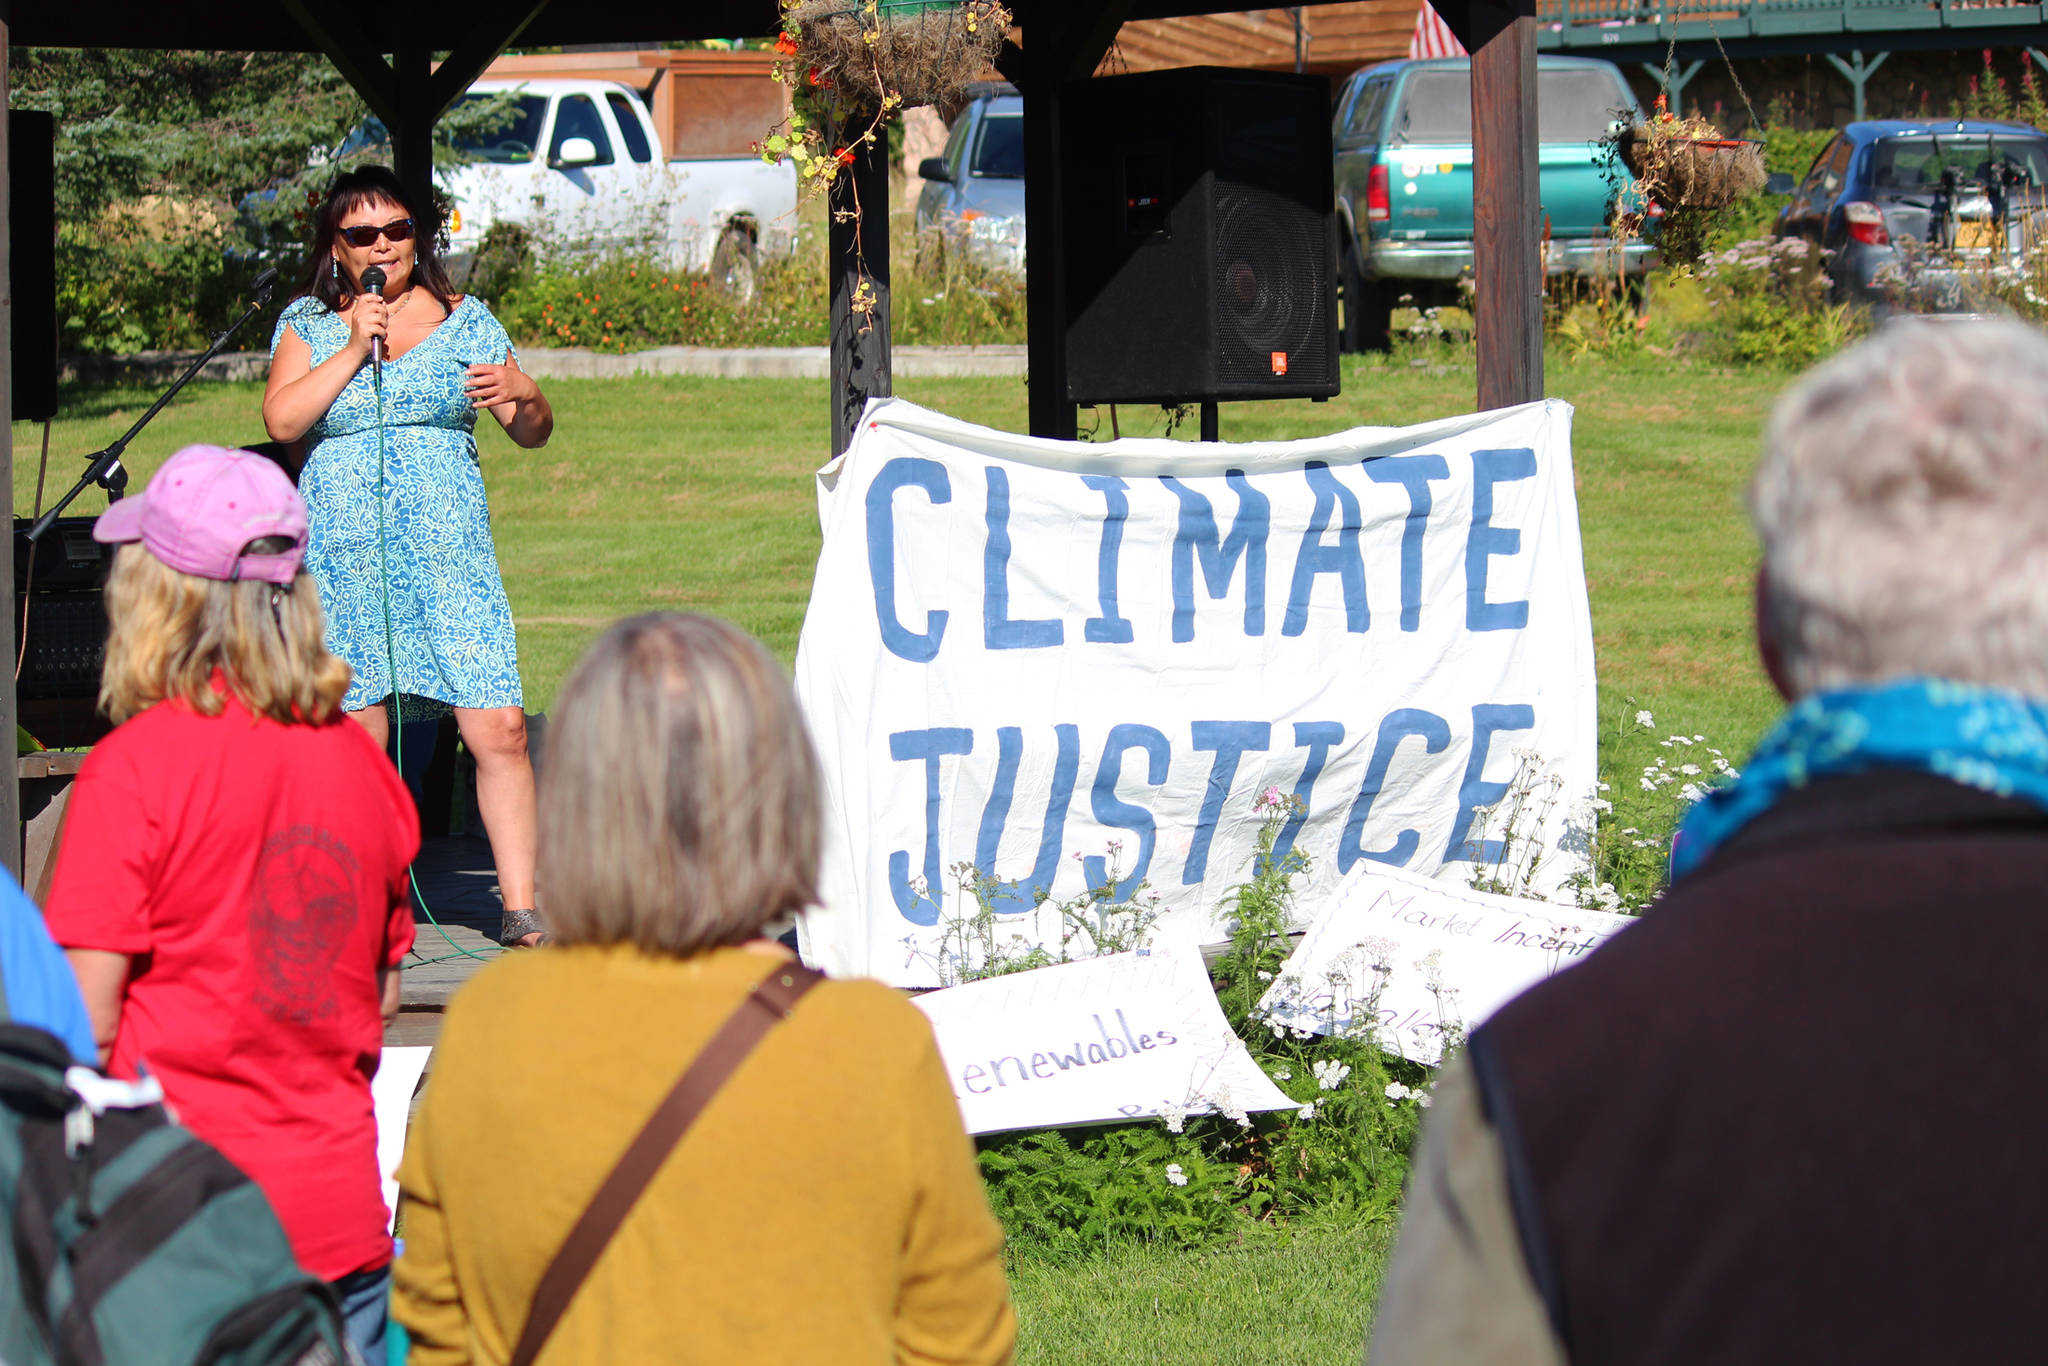 Area residents listen to Lydia Olympic, who worked with The Wilderness Society as a tribal advocate, as she gives a short speech Saturday, Sept. 8, 2018 at the Rise for Climate, Jobs and Justice rally and march at WKFL Park in Homer, Alaska. The local event, which ended in a march down to Mariner Park, was part of a larger movement of rallies held nationally on Sept. 8. (Photo by Megan Pacer/Homer News)